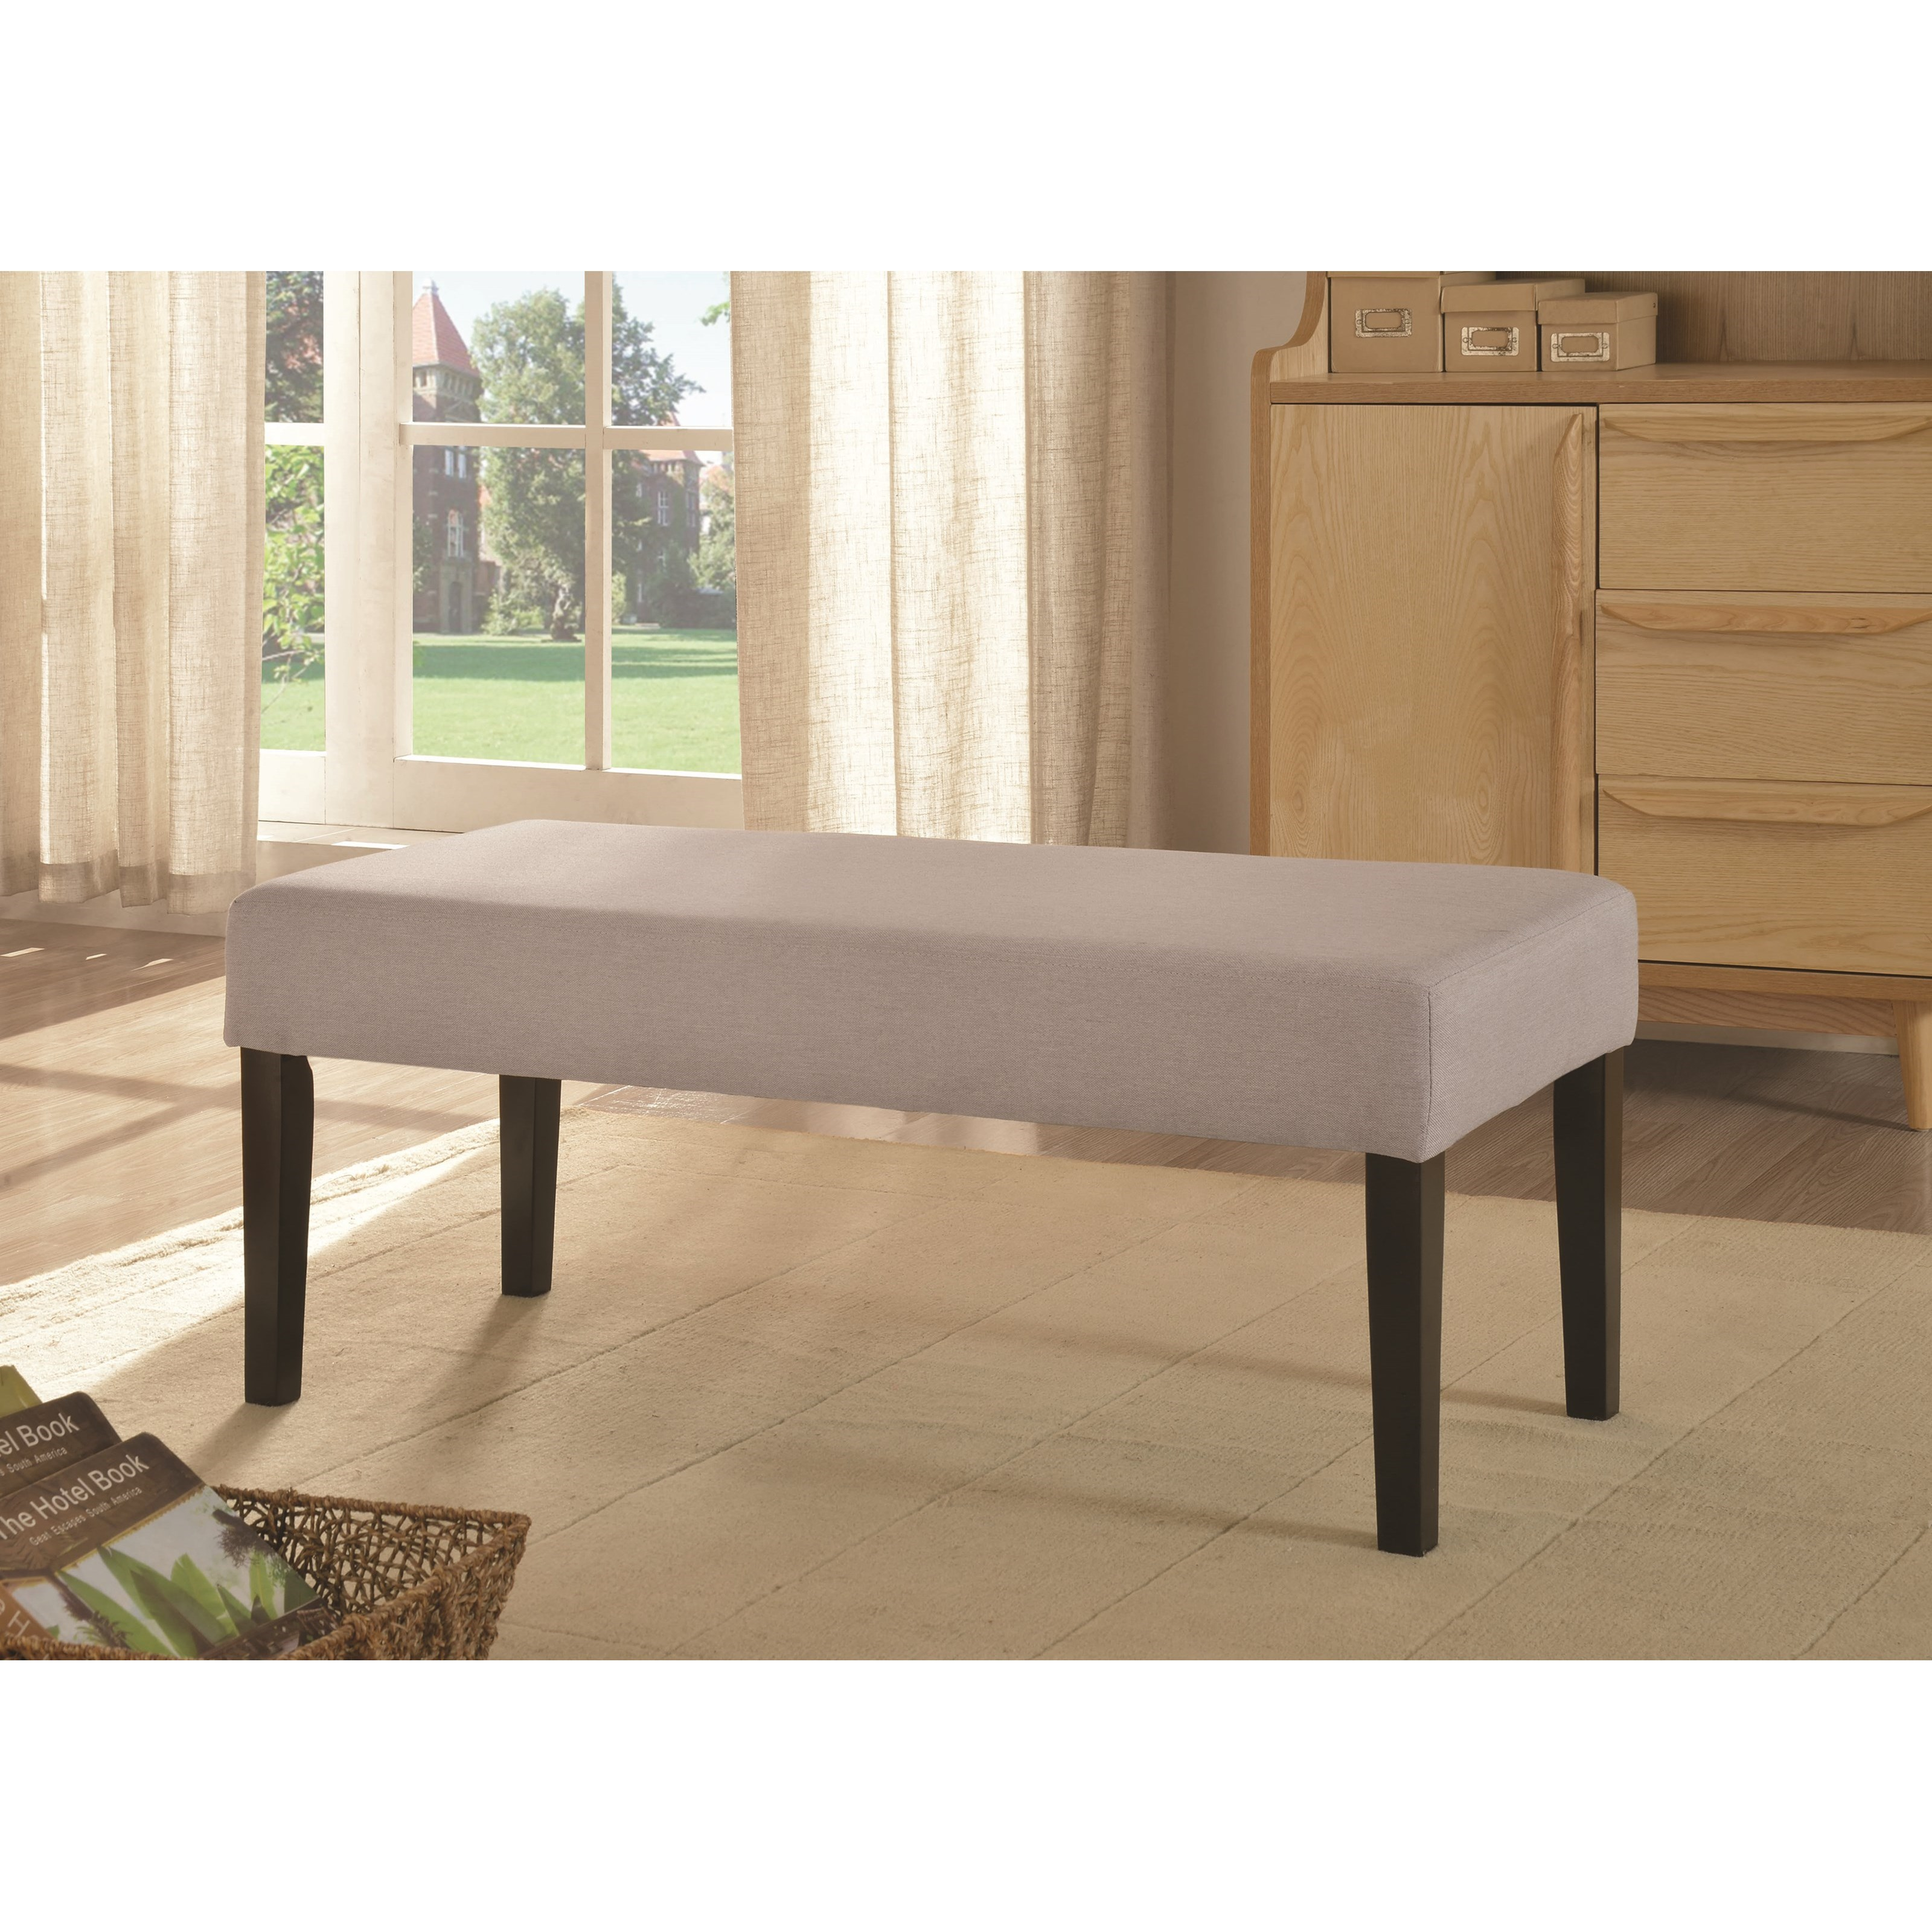 Coaster Benches Bench - Item Number: 500283